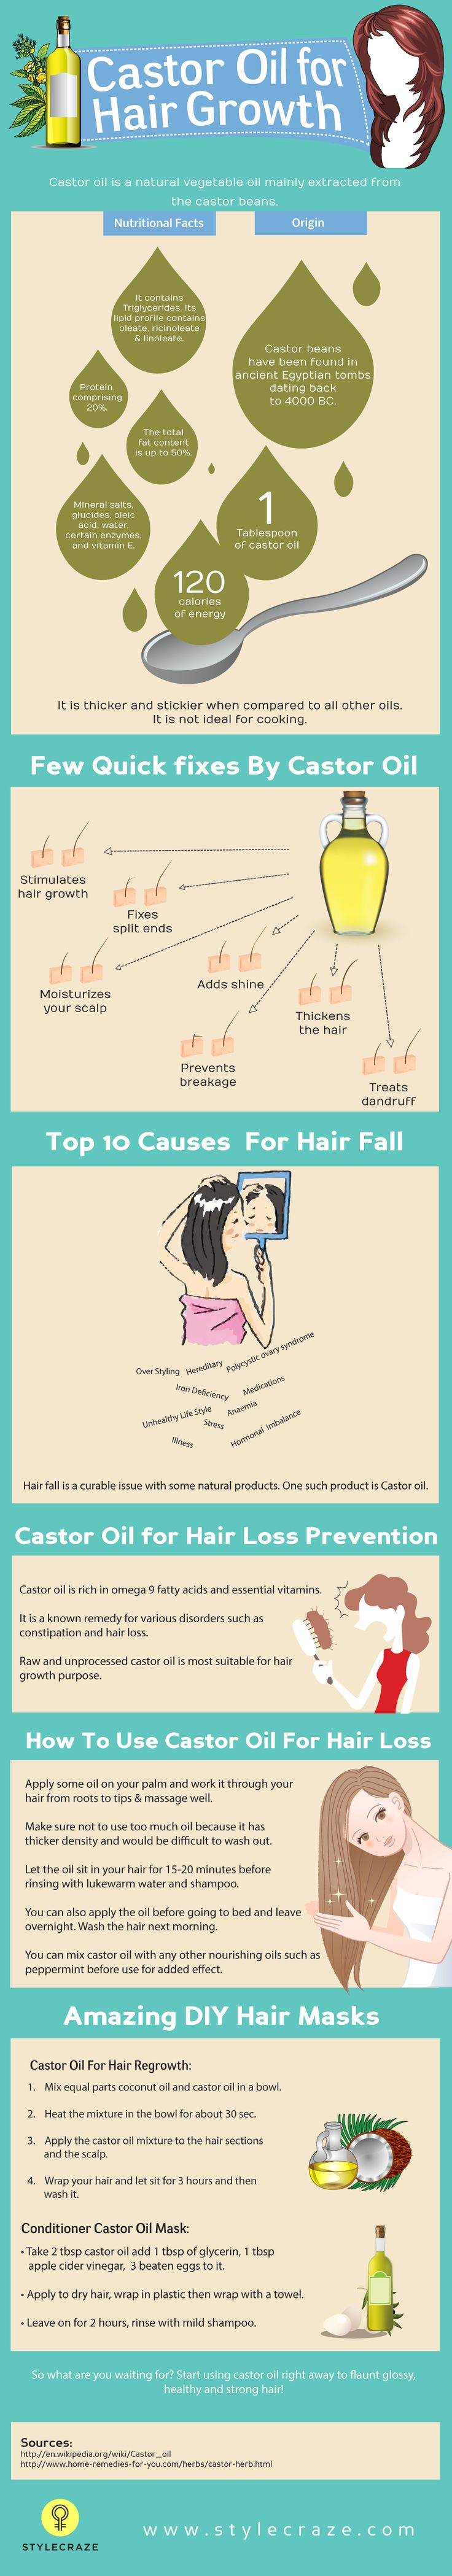 Castor Oil for Hair Growth Like what you see ? Like it ❤, pin it , and follow me @princessmvria ✨